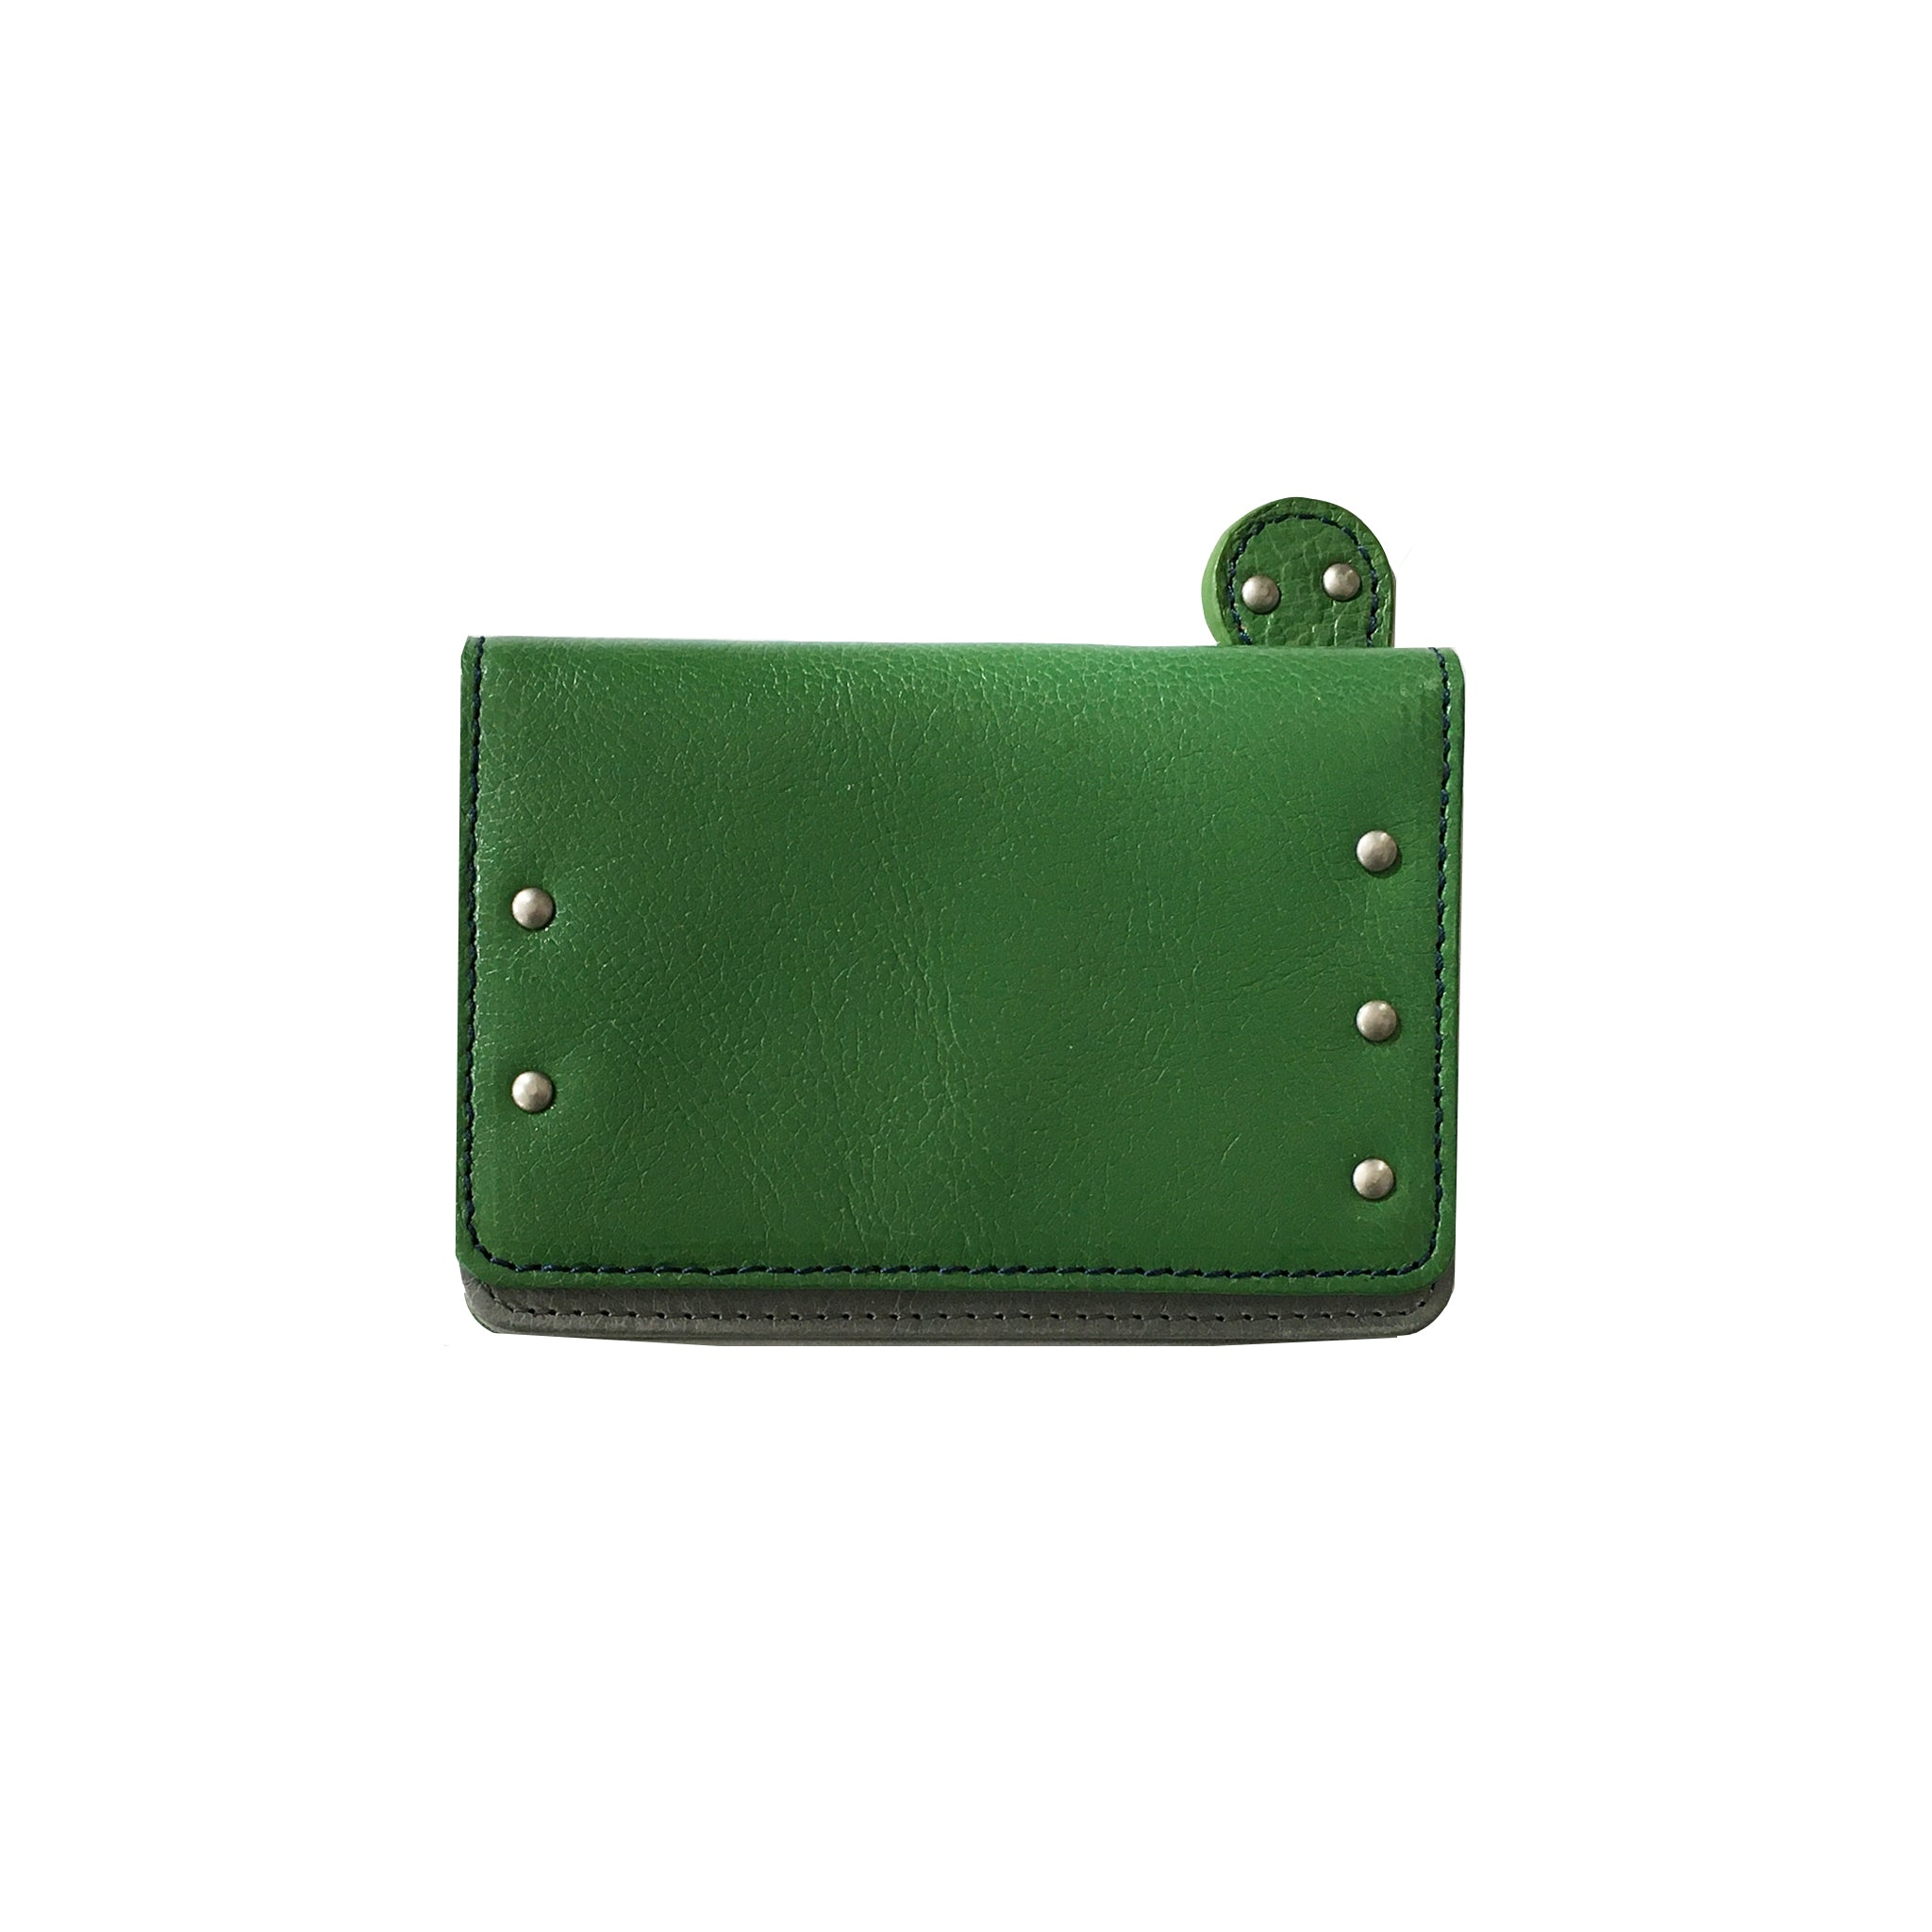 Highway Demi (B) - The Card Case | Green